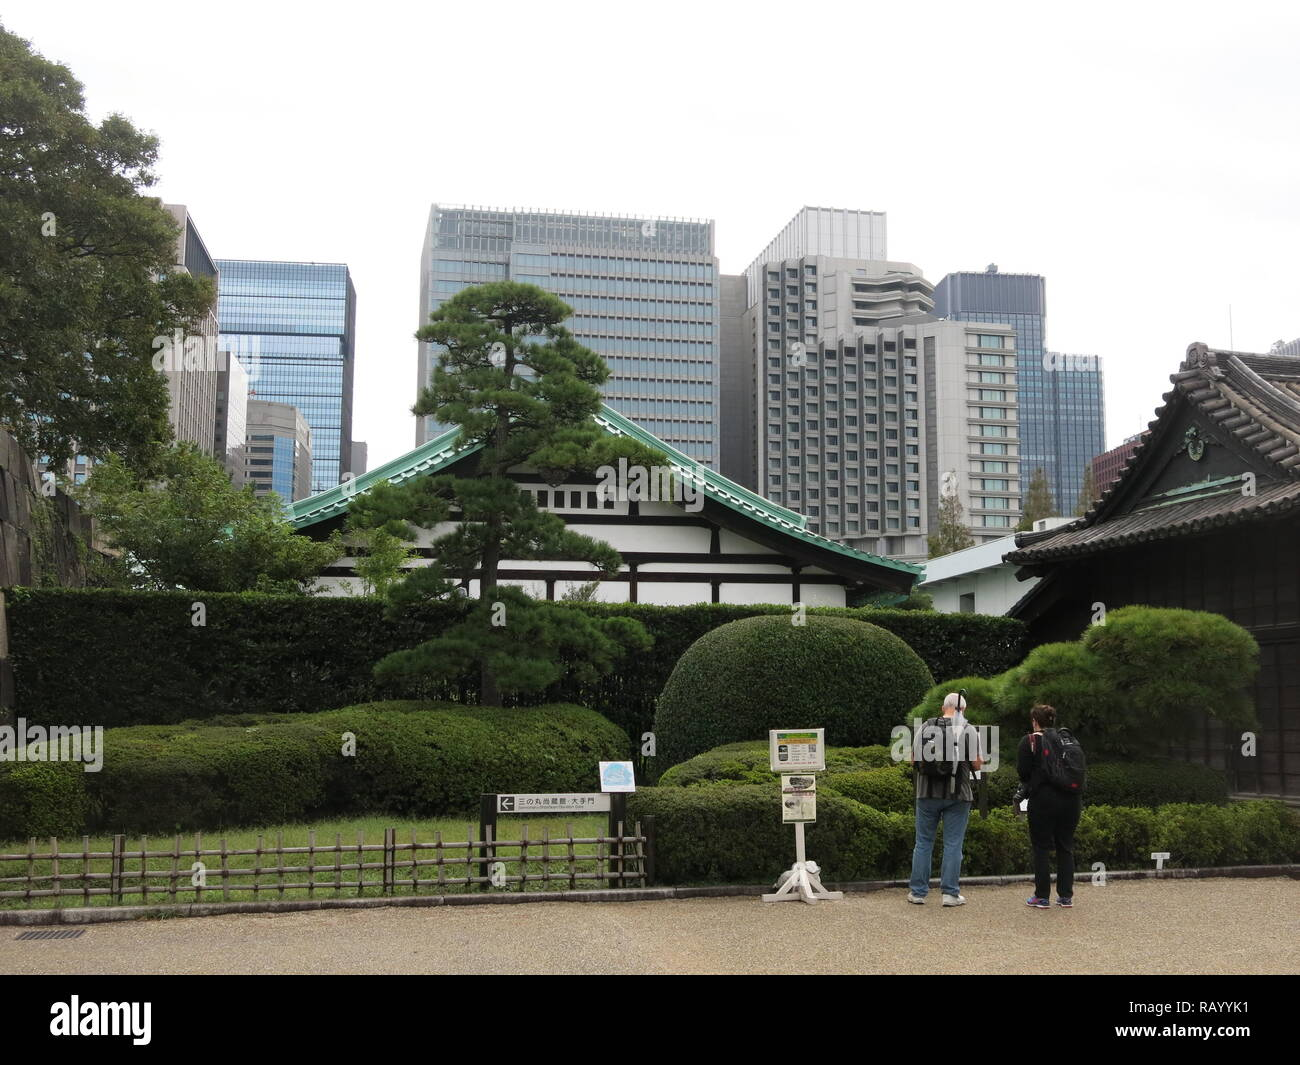 View of the Tokyo Imperial Palace East Gardens: traditional buildings contrast with modern office bocks at this public garden in the centre of Tokyo Stock Photo